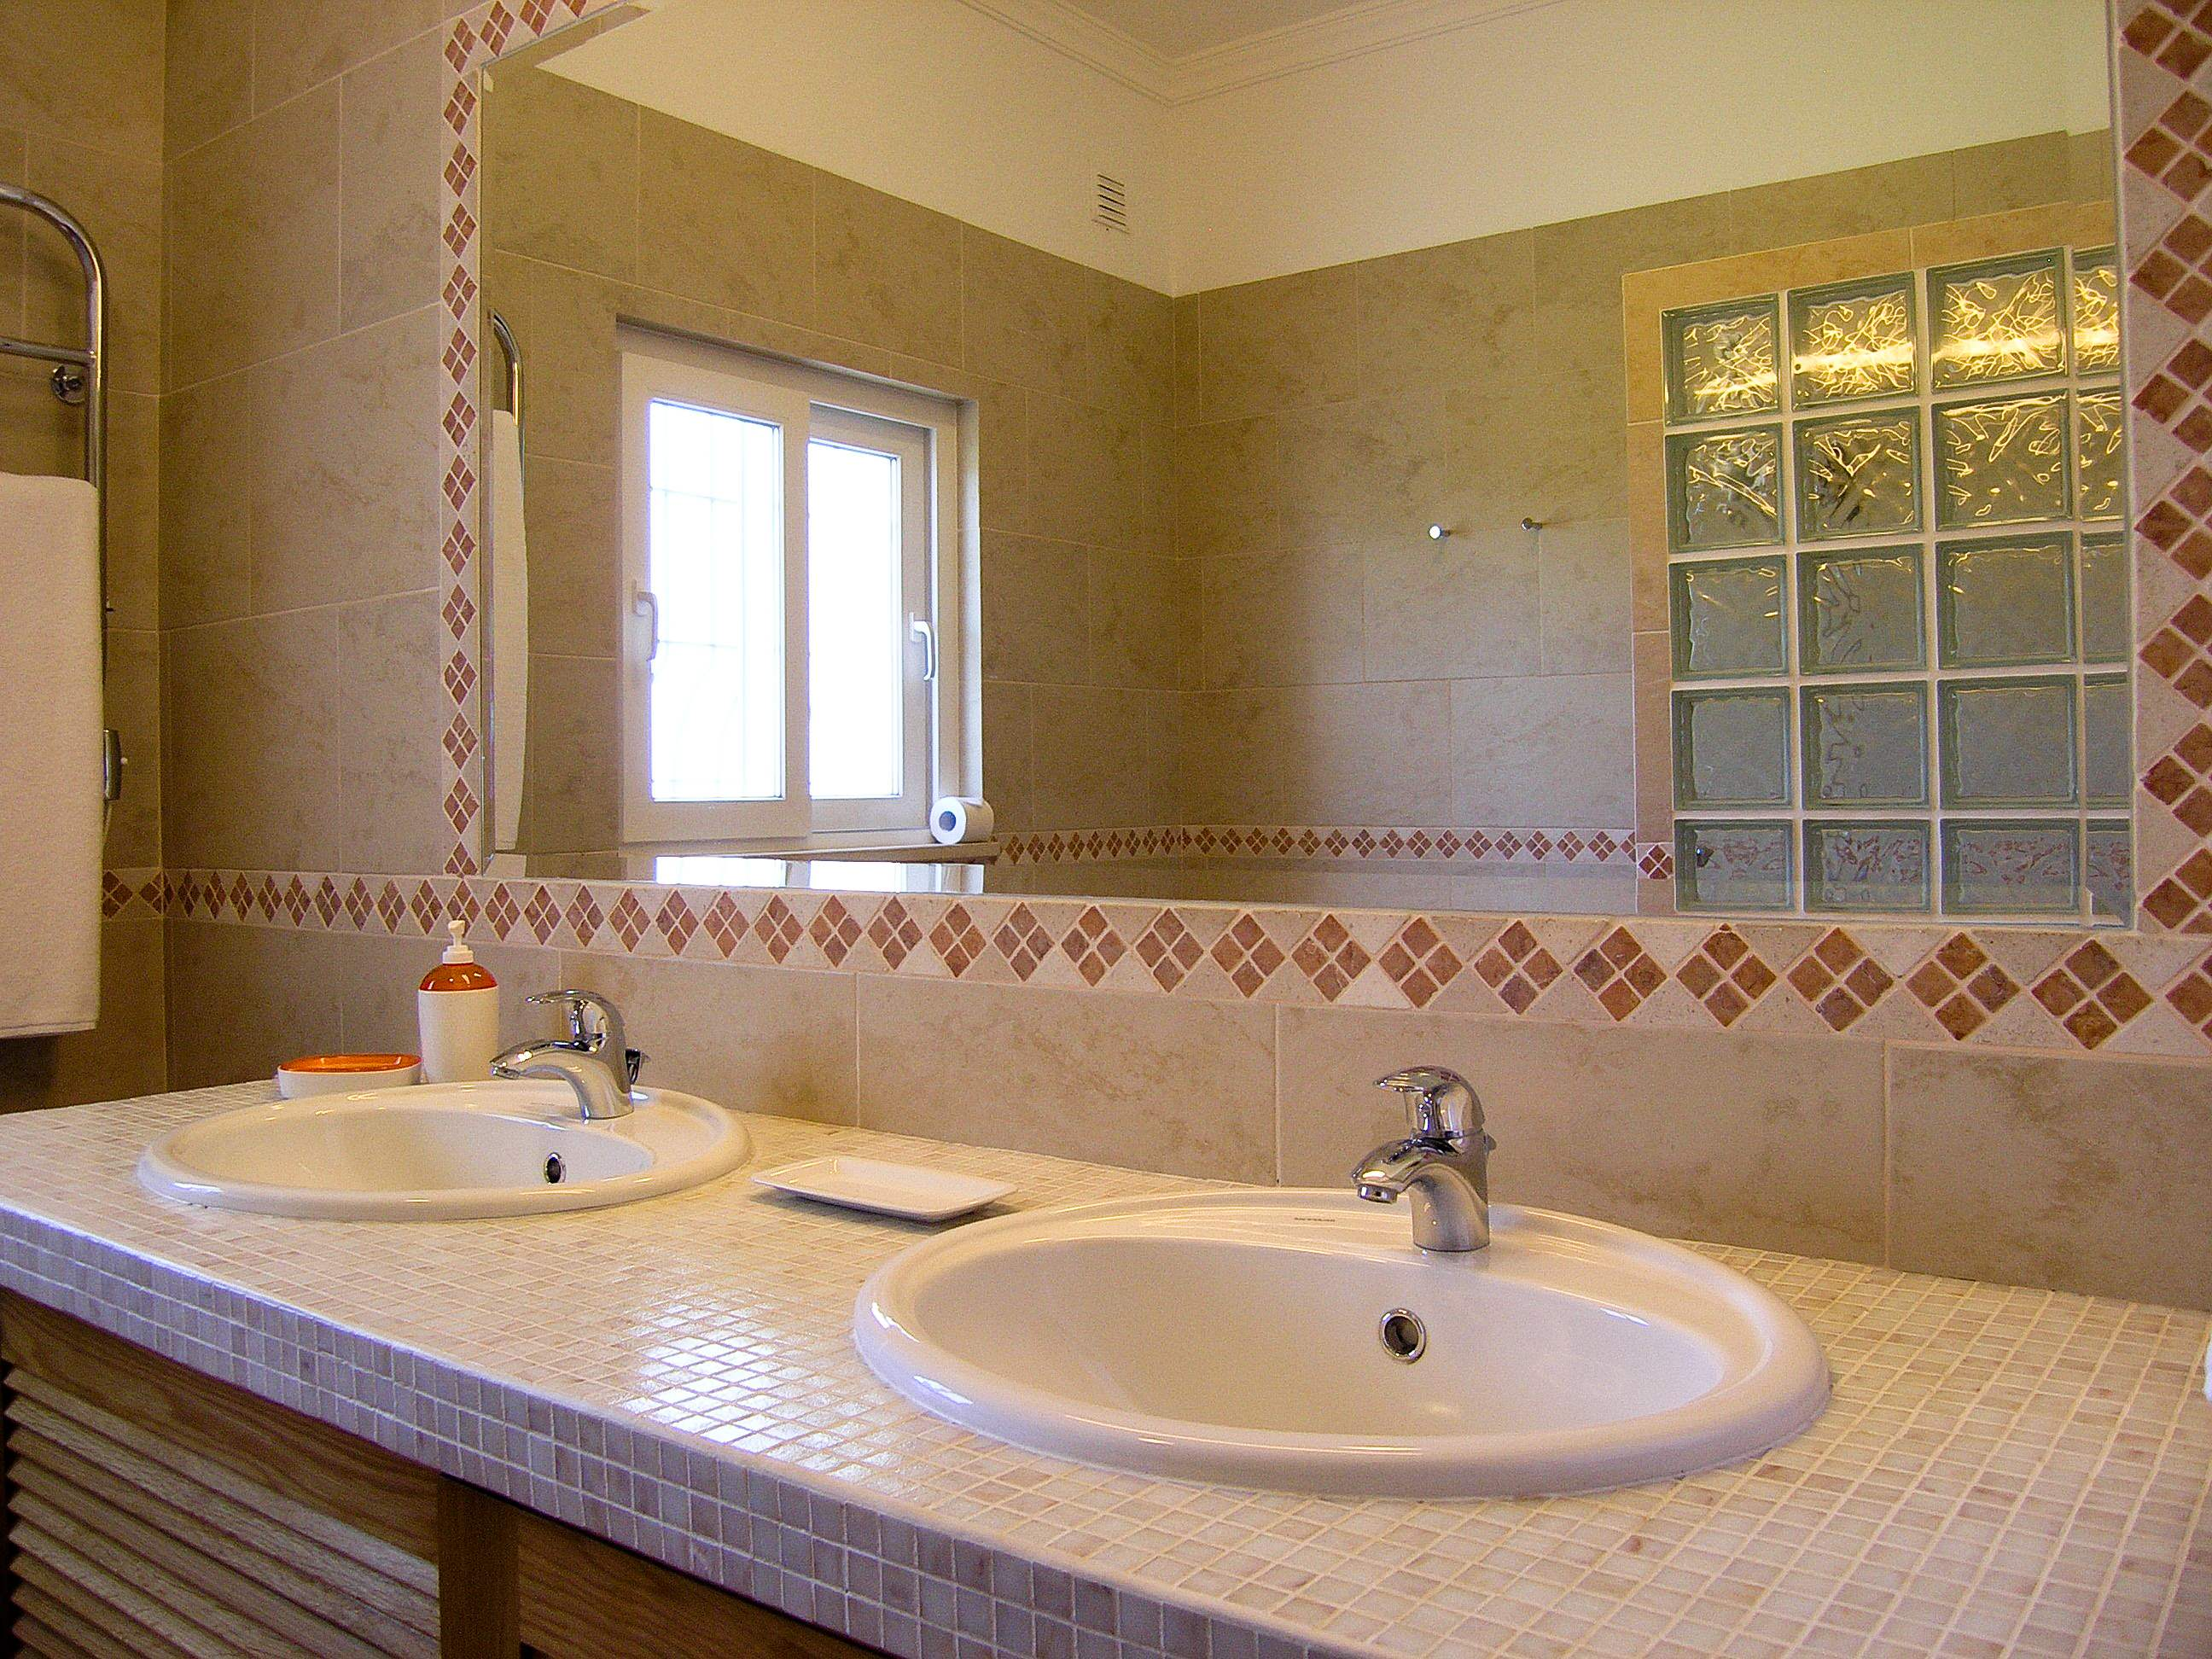 Martinhal Luxury Villa No.8, Three Bedroom Villa, 3 bedroom villa in Martinhal Sagres, Algarve Photo #19